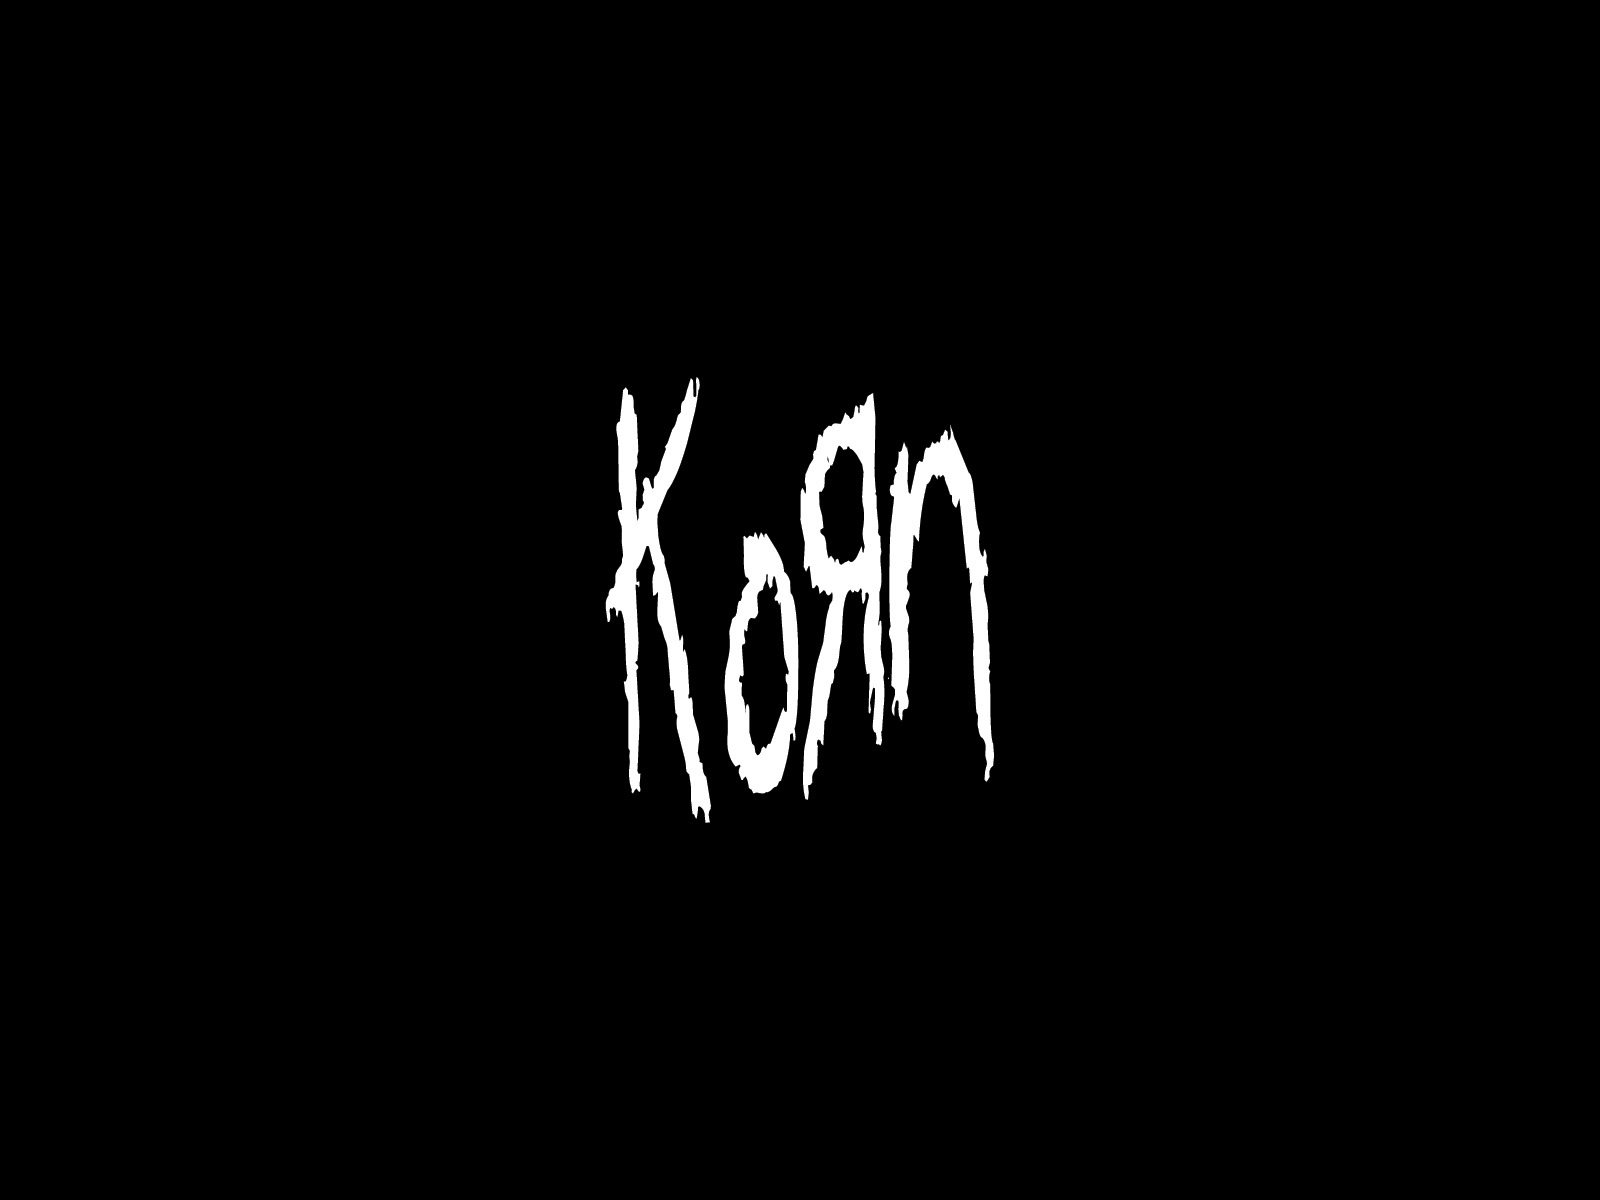 http://3.bp.blogspot.com/-BbxyKykDLdc/T9zN0soul0I/AAAAAAAACCo/RgAOnZjpDKo/s1600/korn-wallpaper-black-background.jpg